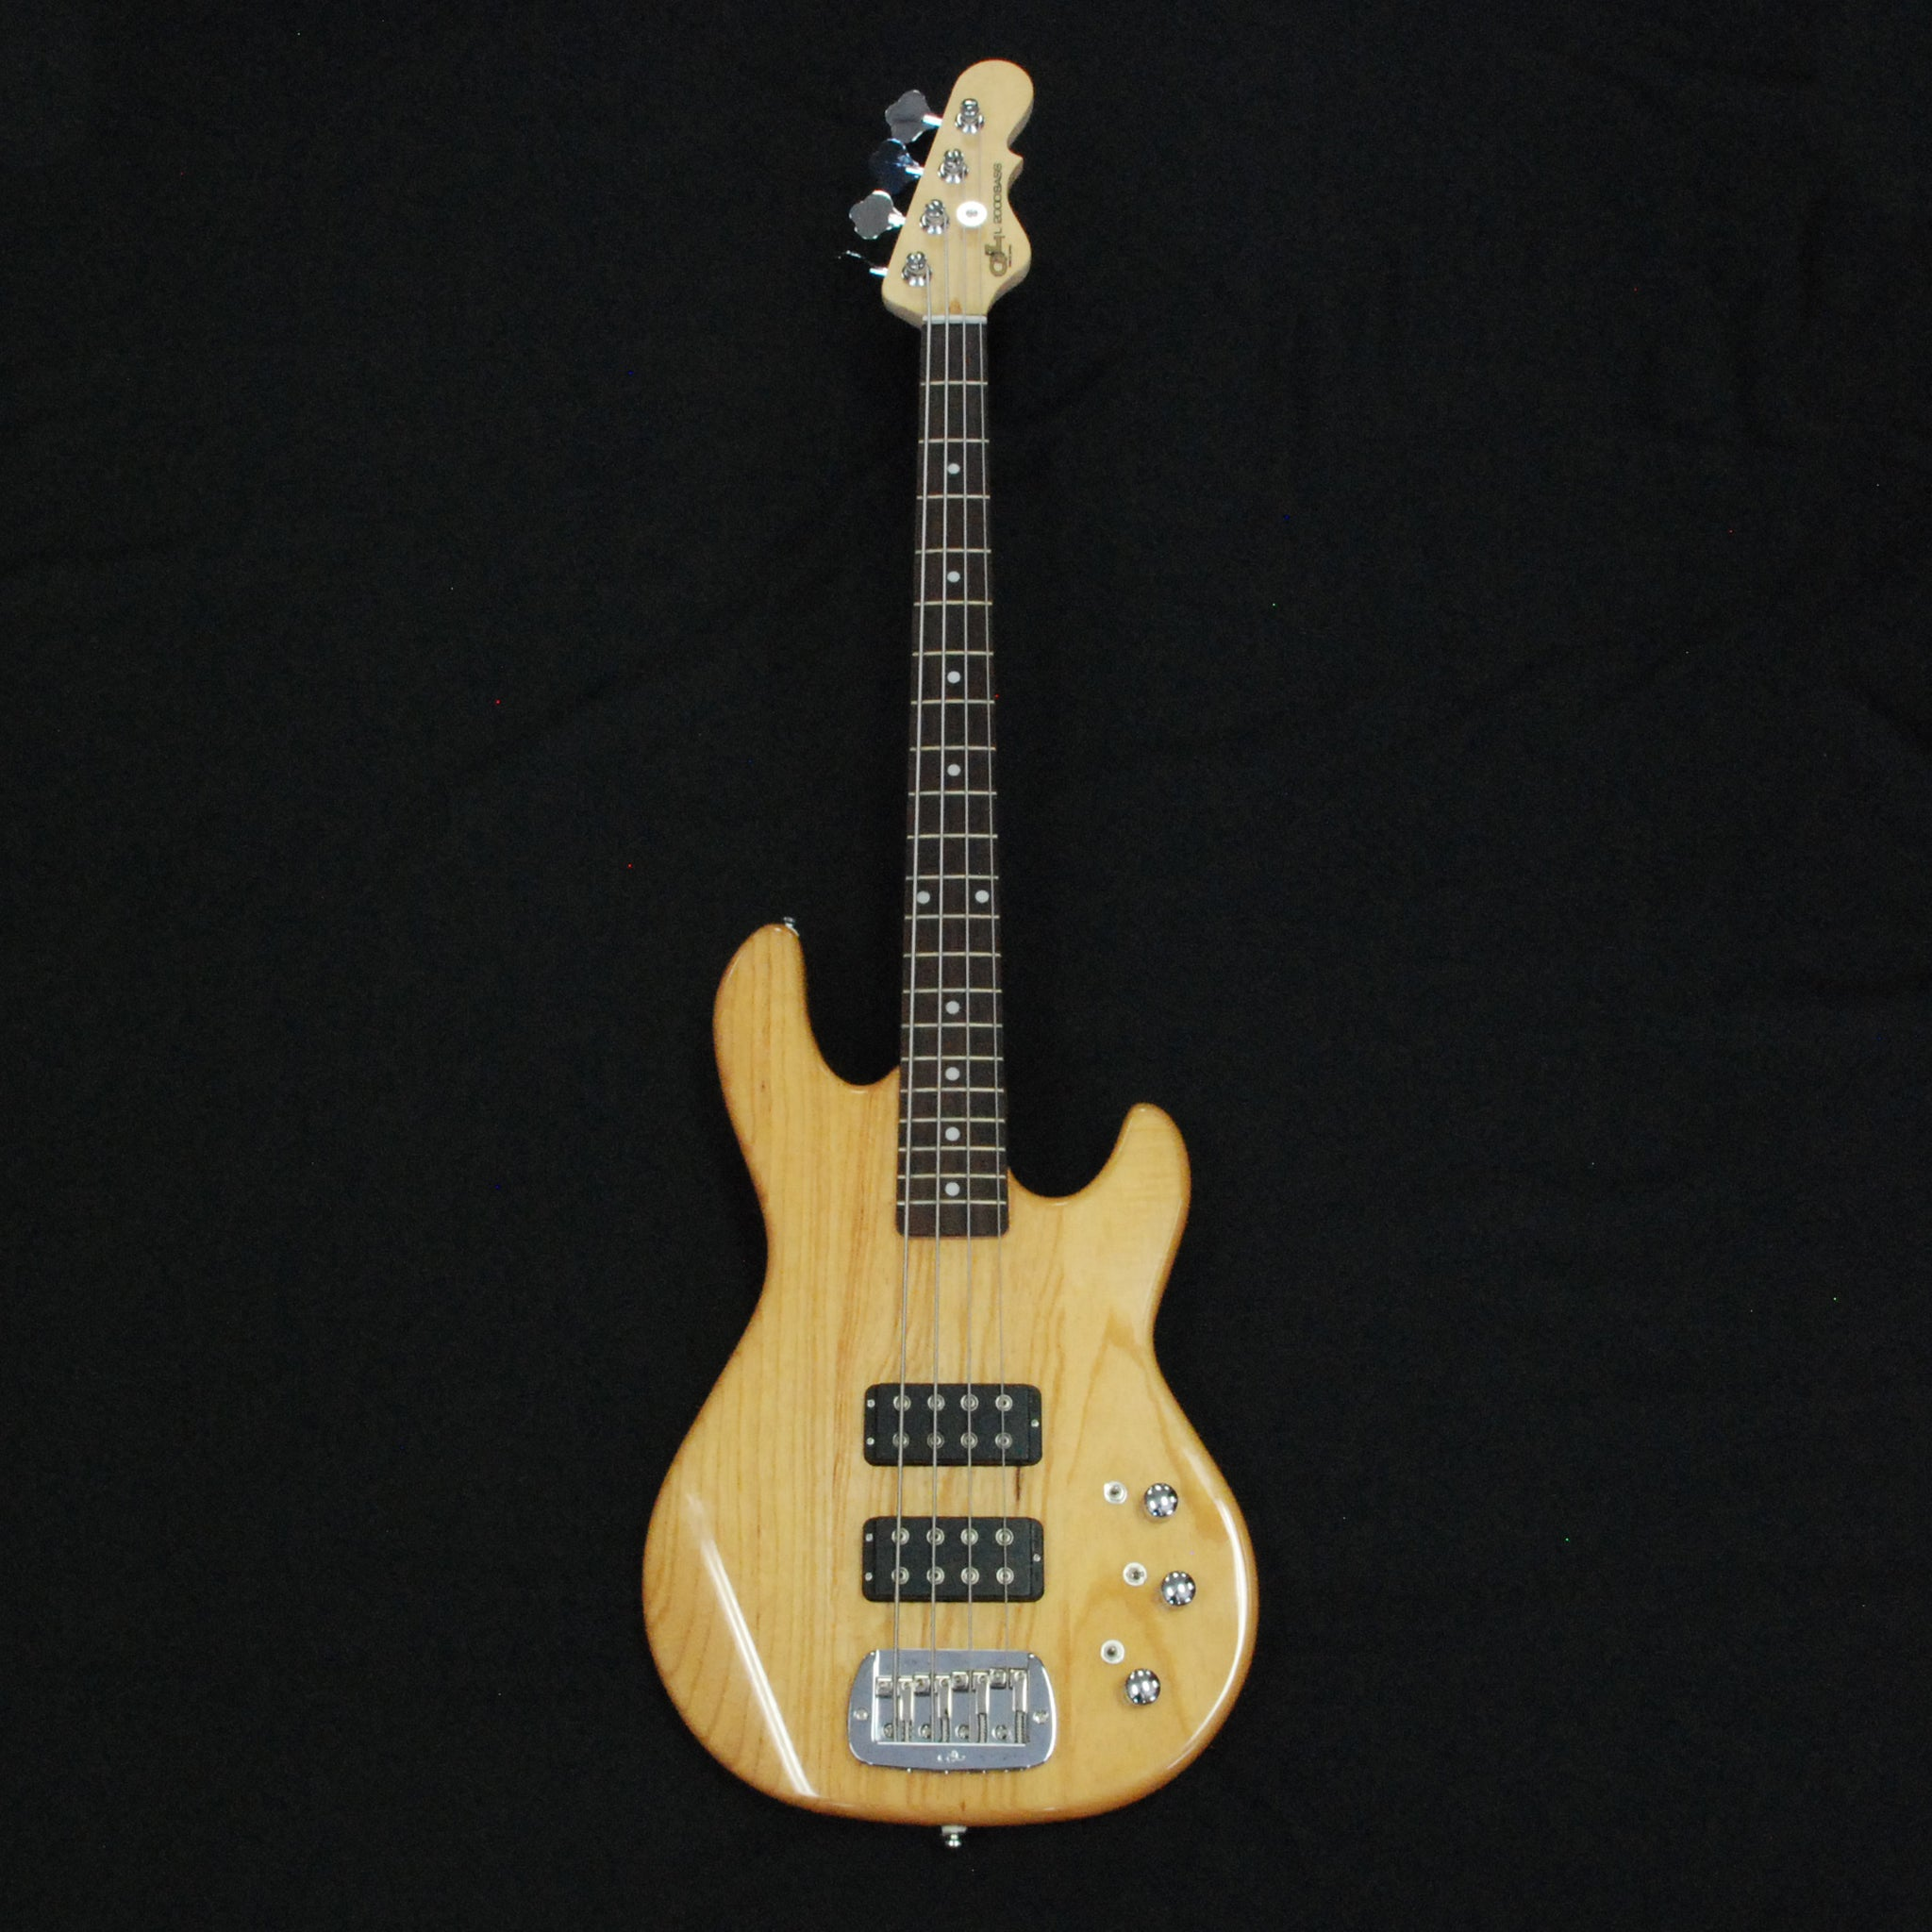 Shop online for G&L Tribute L2000 4 String Electric Bass Guitar Natural Ash today.  Now available for purchase from Midlothian Music of Orland Park, Illinois, USA